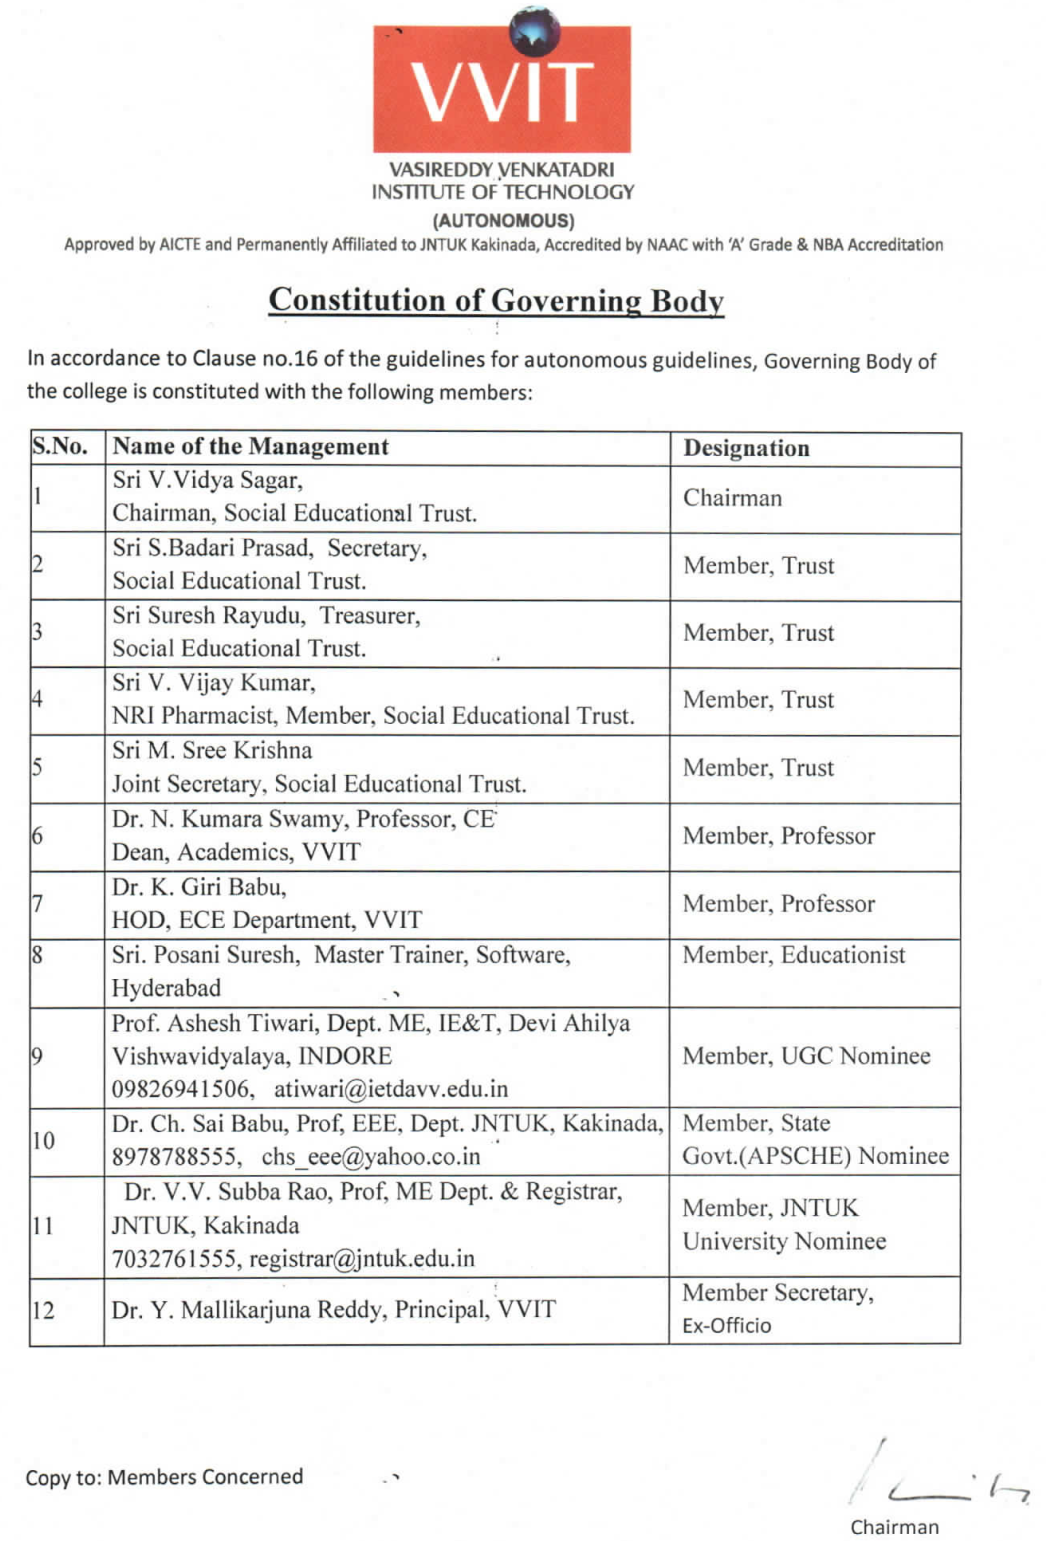 CONSTITUTION OF GOVERNING BODY